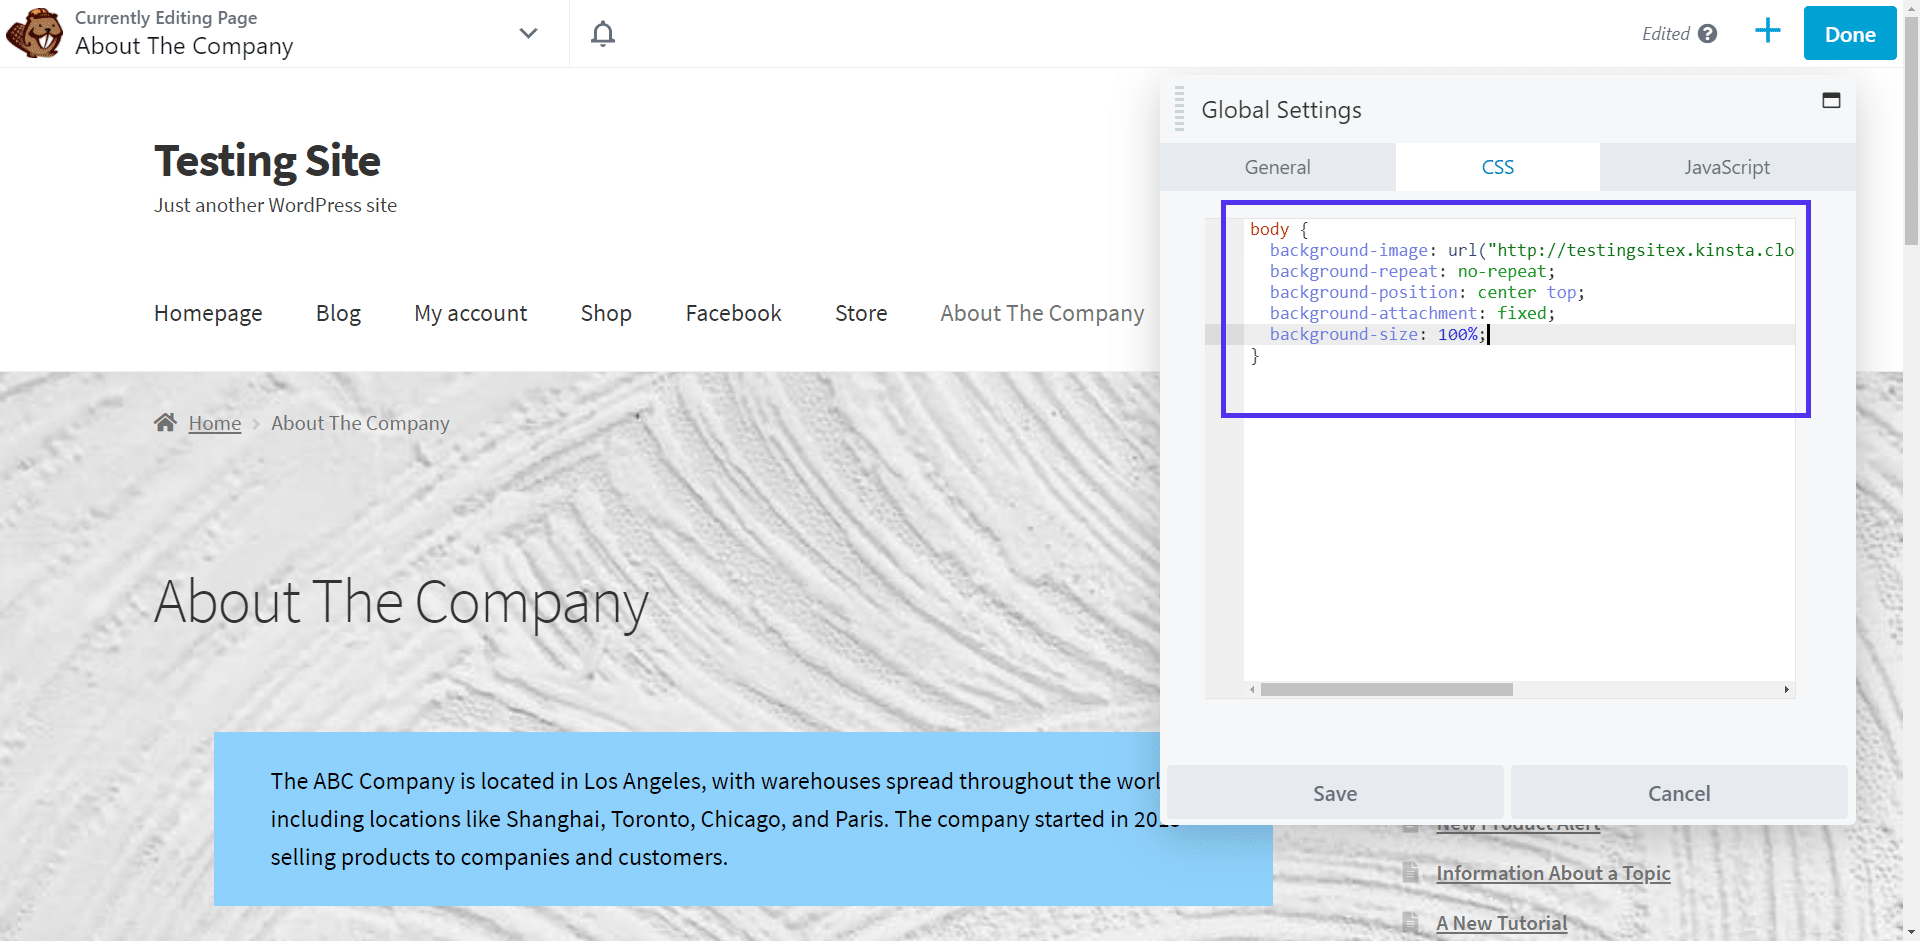 Go to the CSS tab